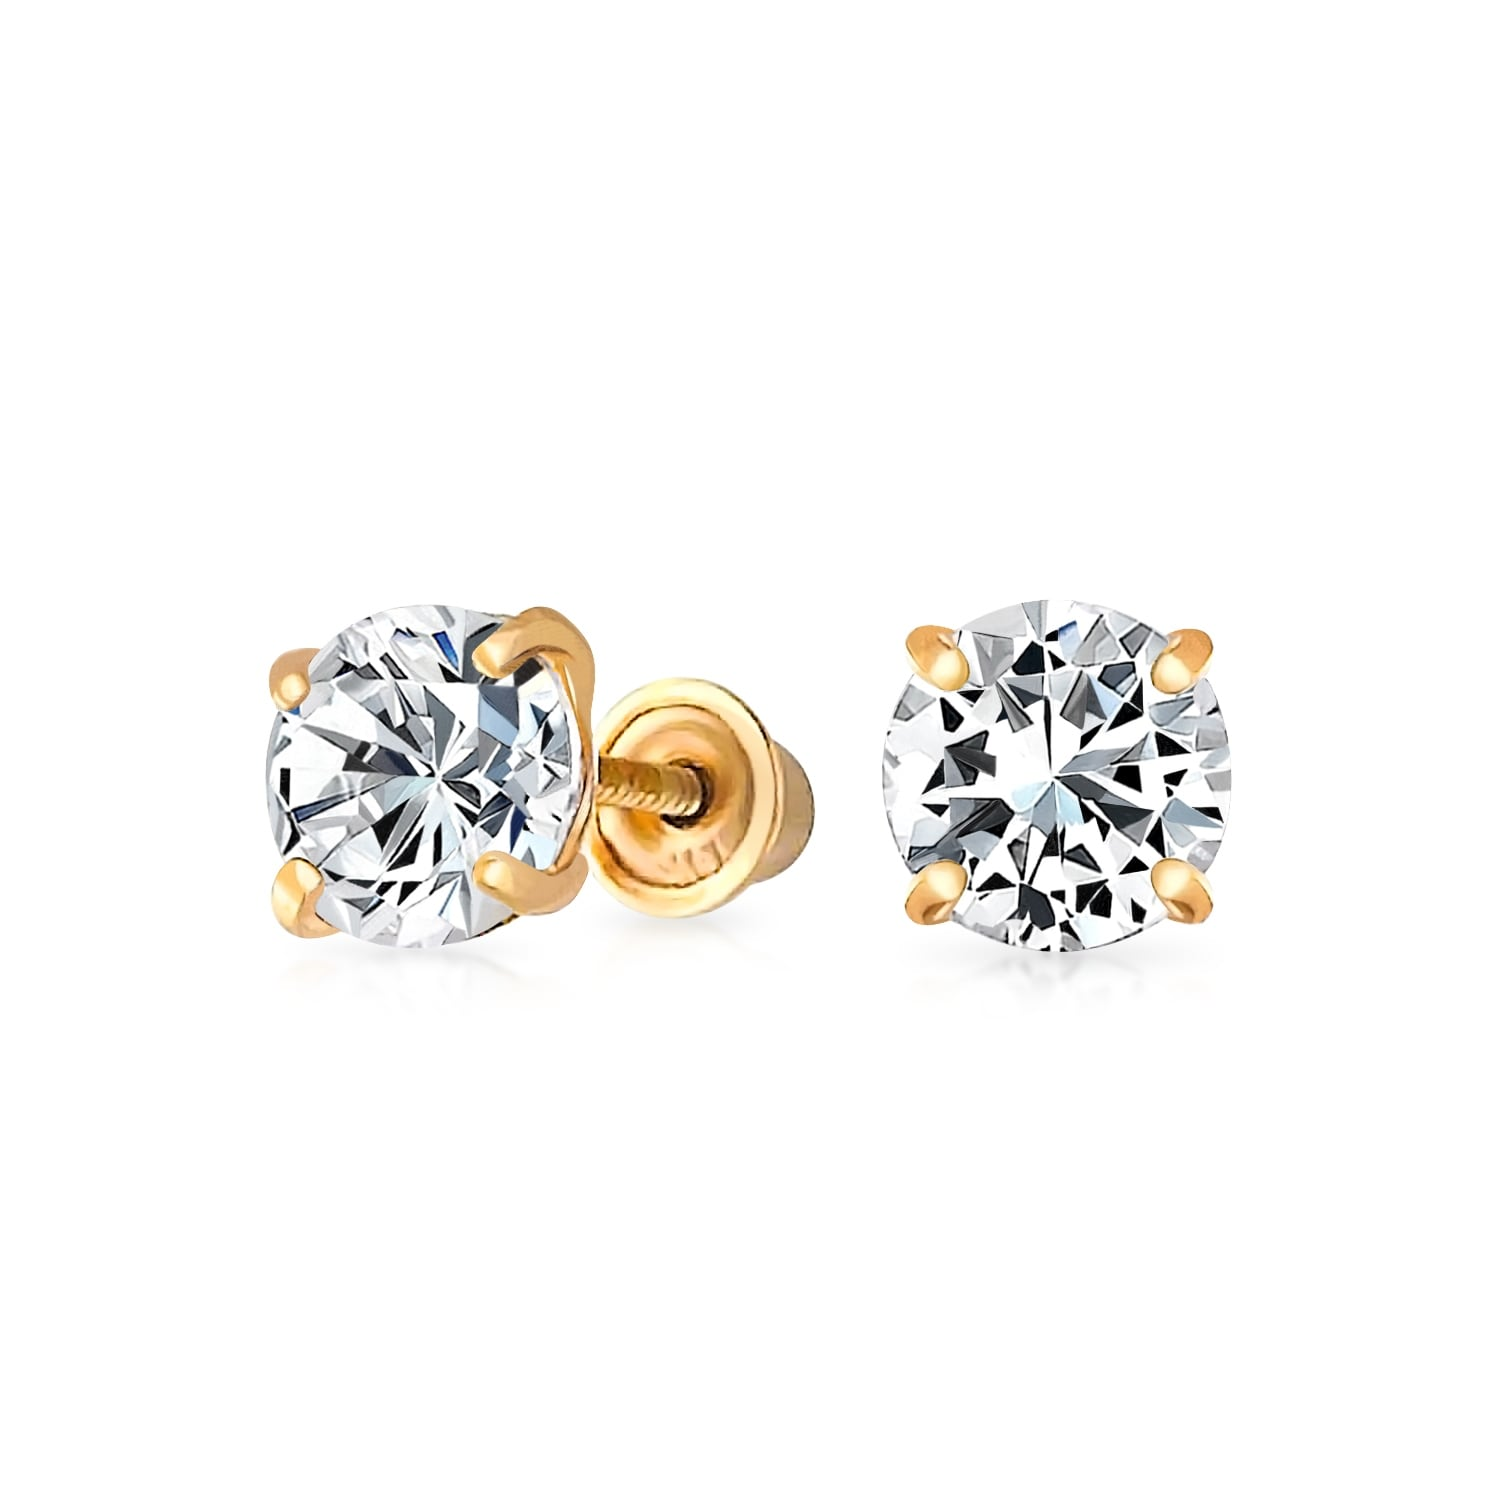 25ct Tiny Simple Minimalist Round Cubic Zirconia Solitaire Cz Stud Earrings For Women Men Real 14k Gold 3mm